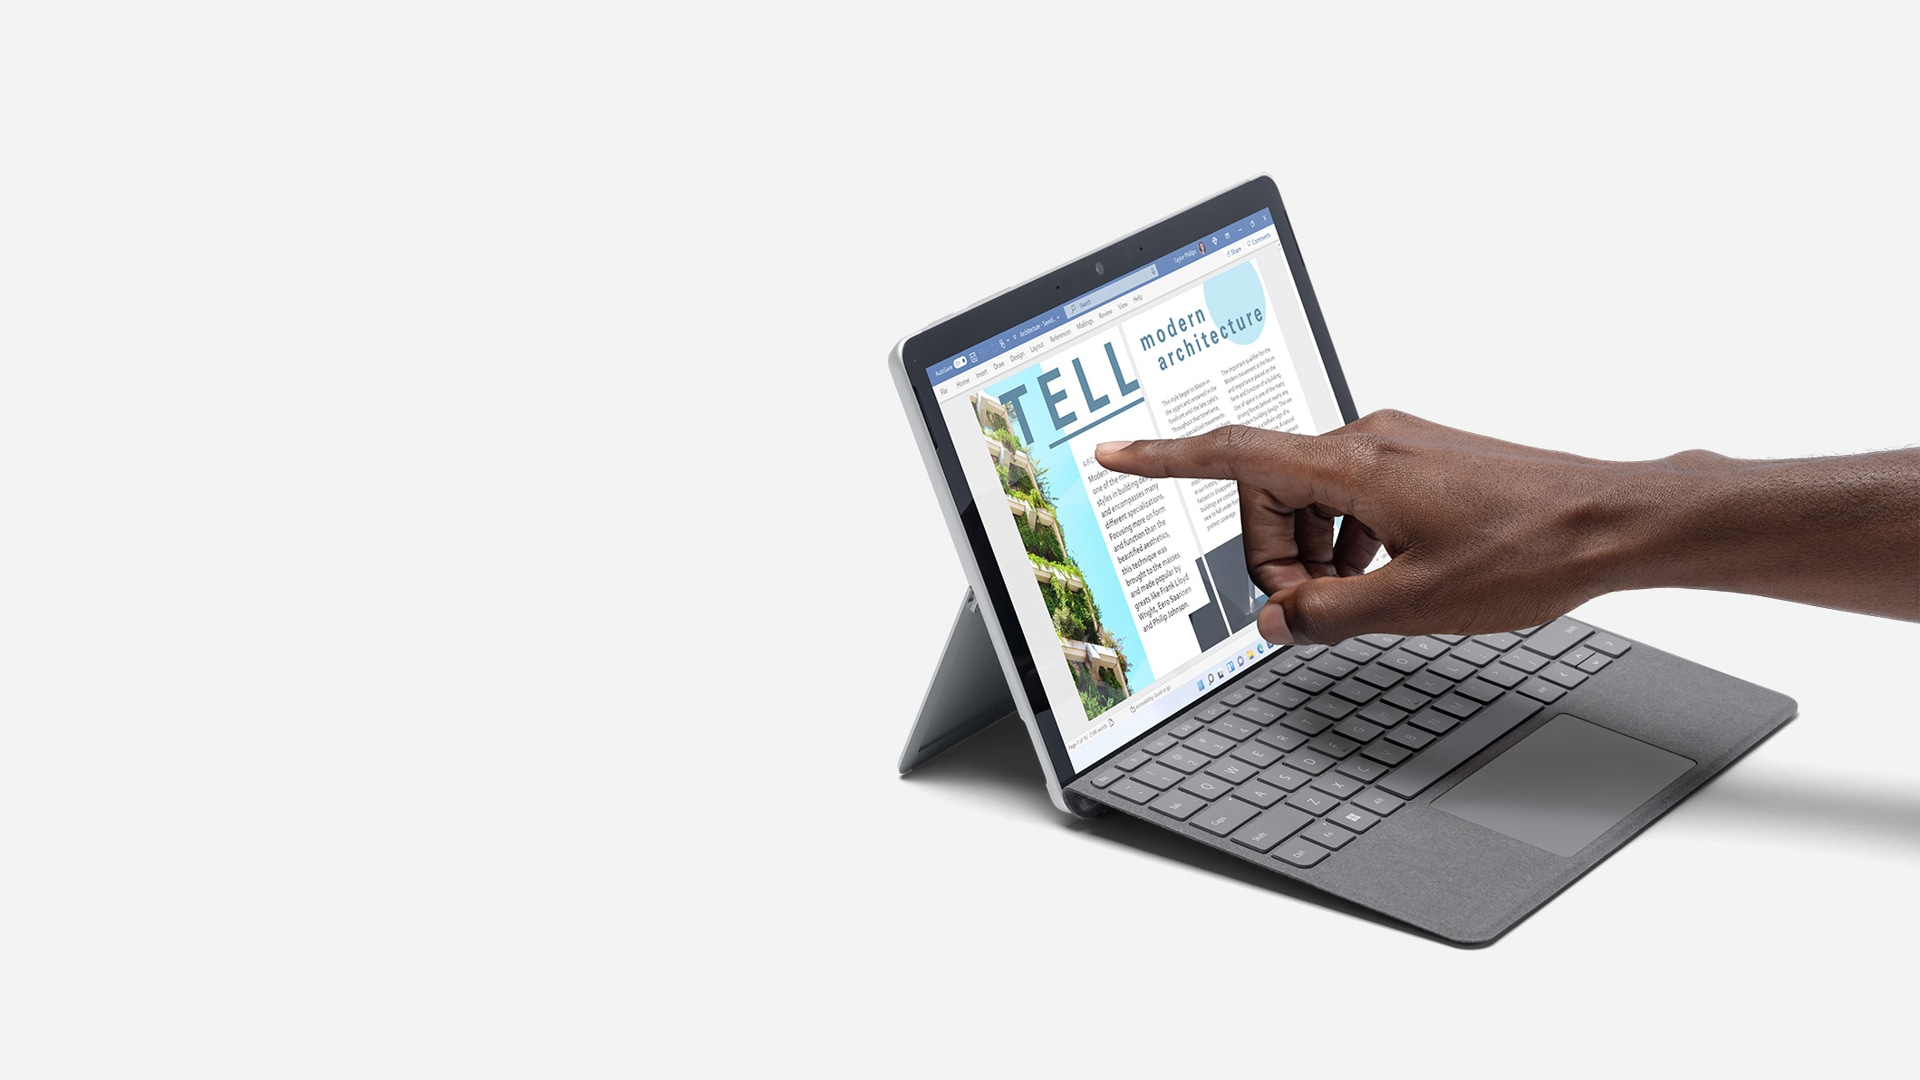 Surface Go 3 being used as a laptop.